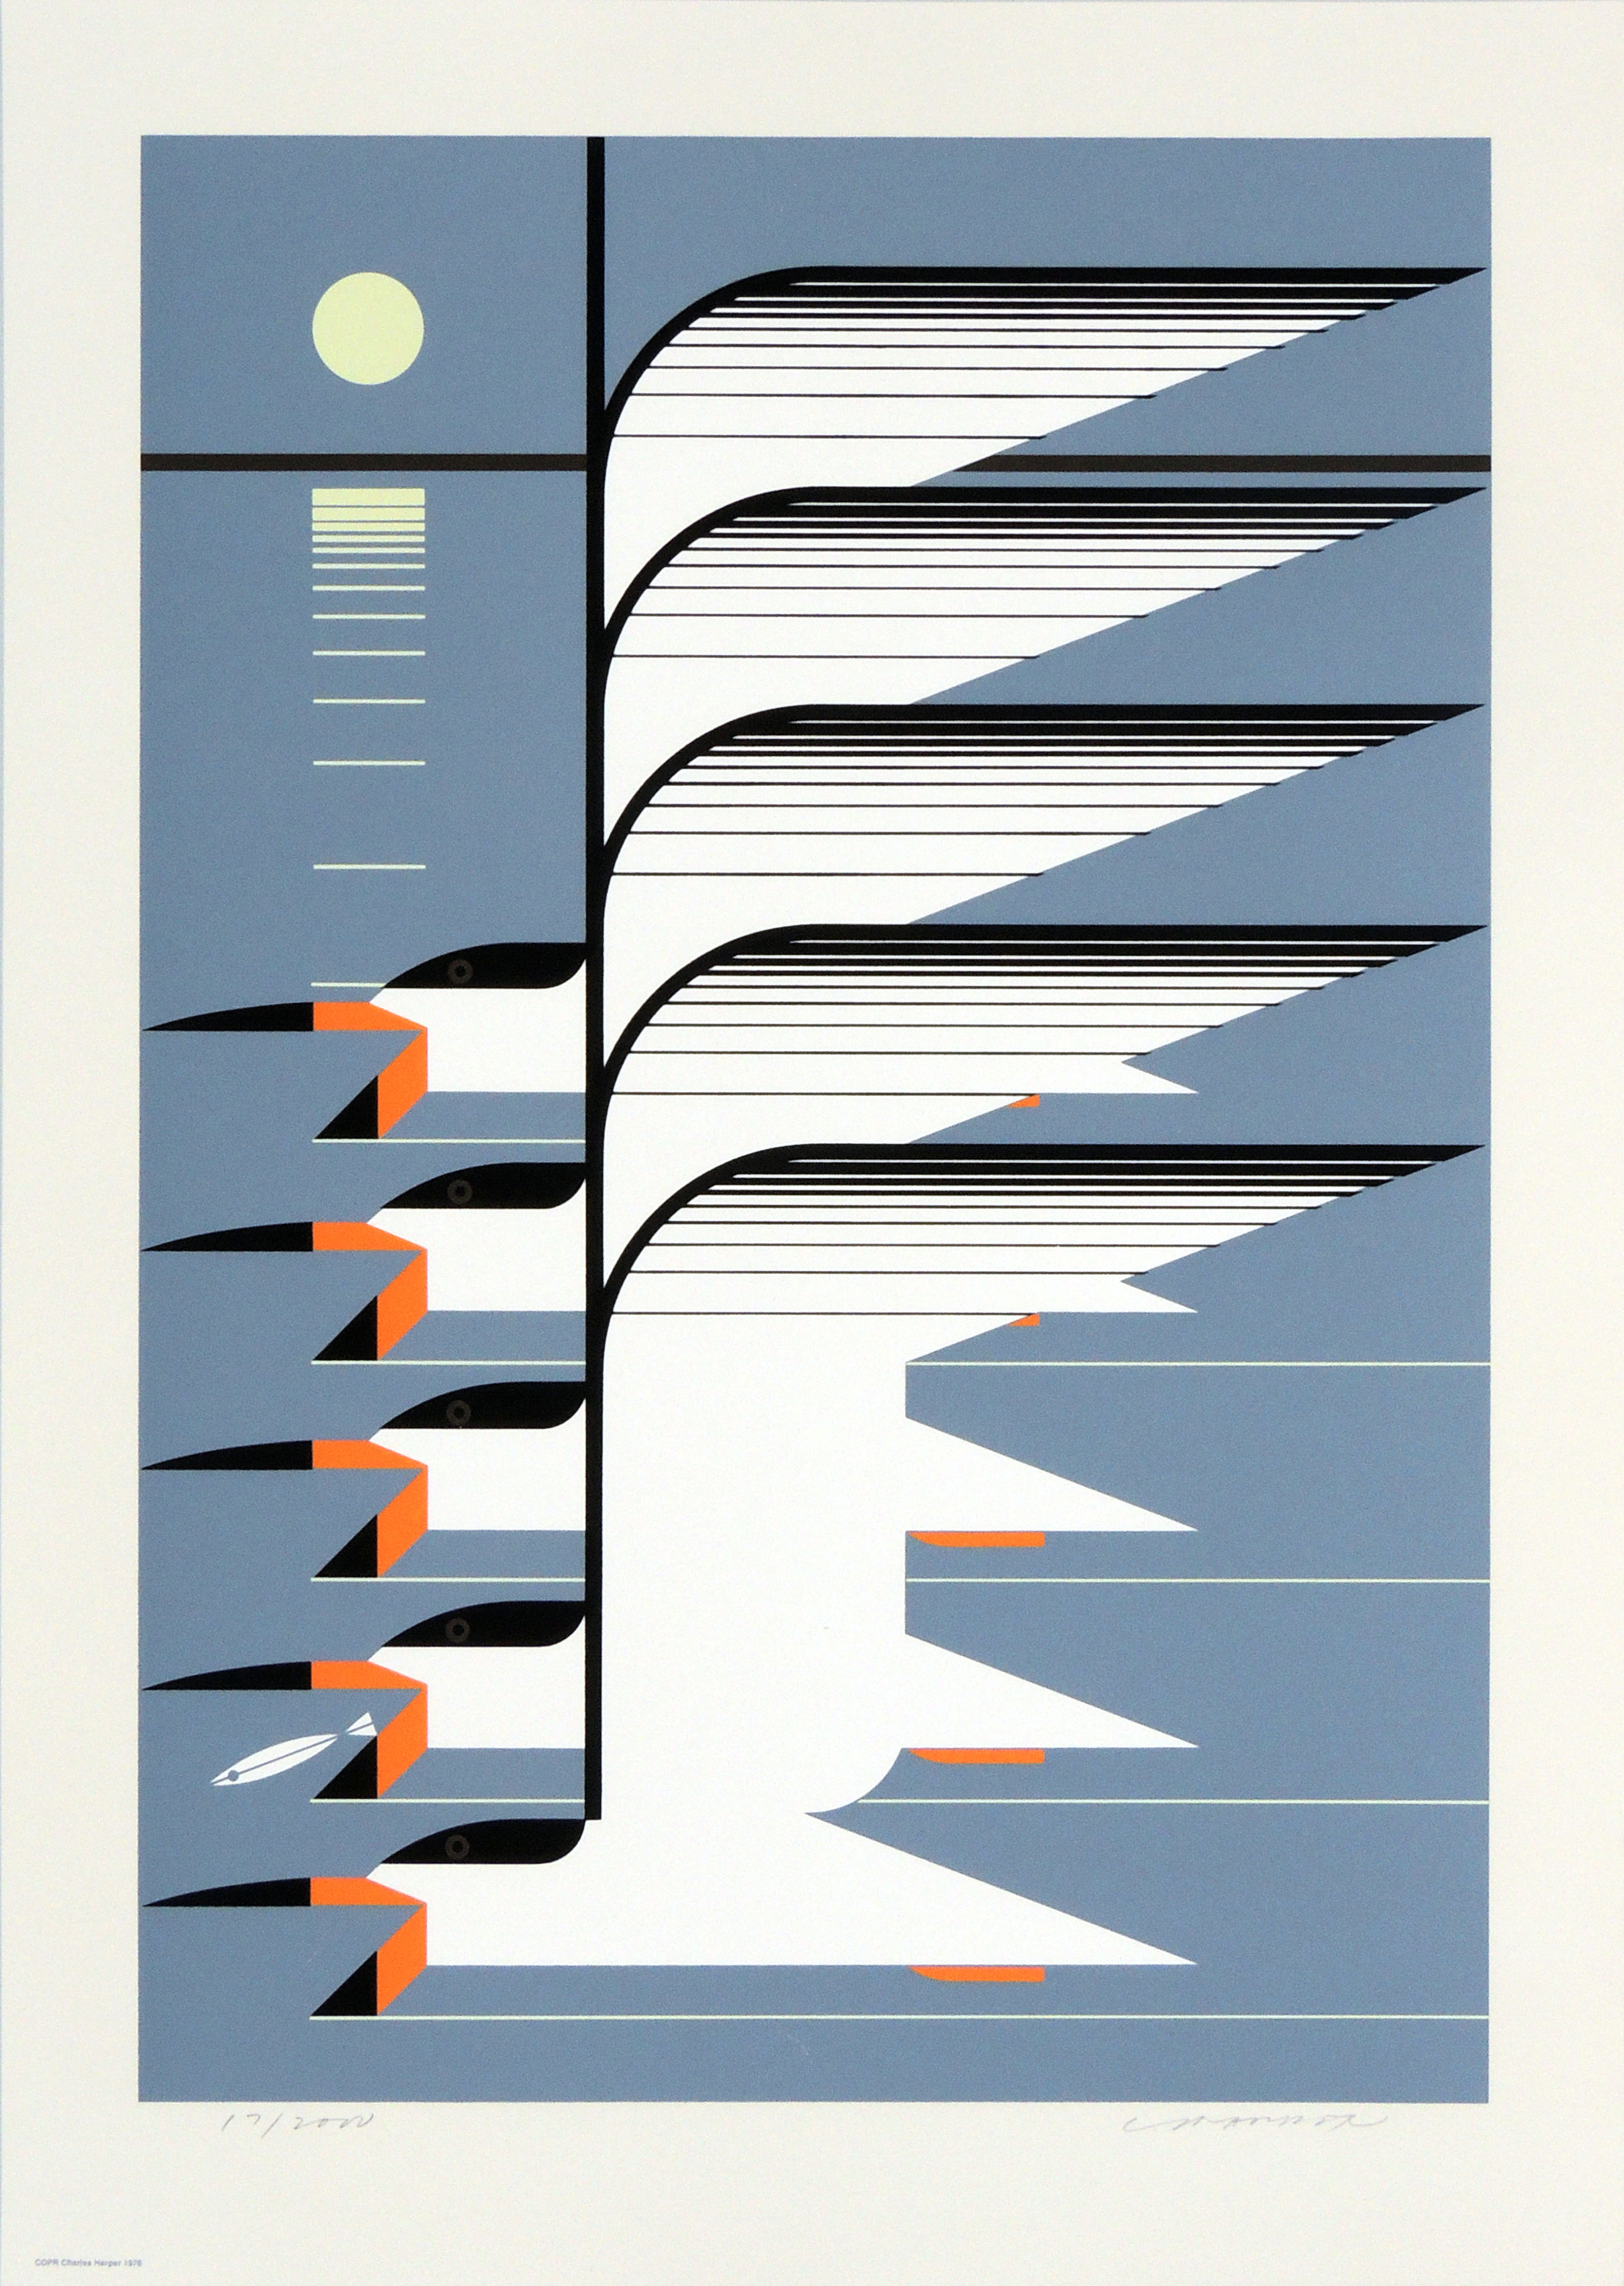 Charley Harper | SKIMMERSCAPE | serigraph on paper | 20-7/8 x 14-1/2"